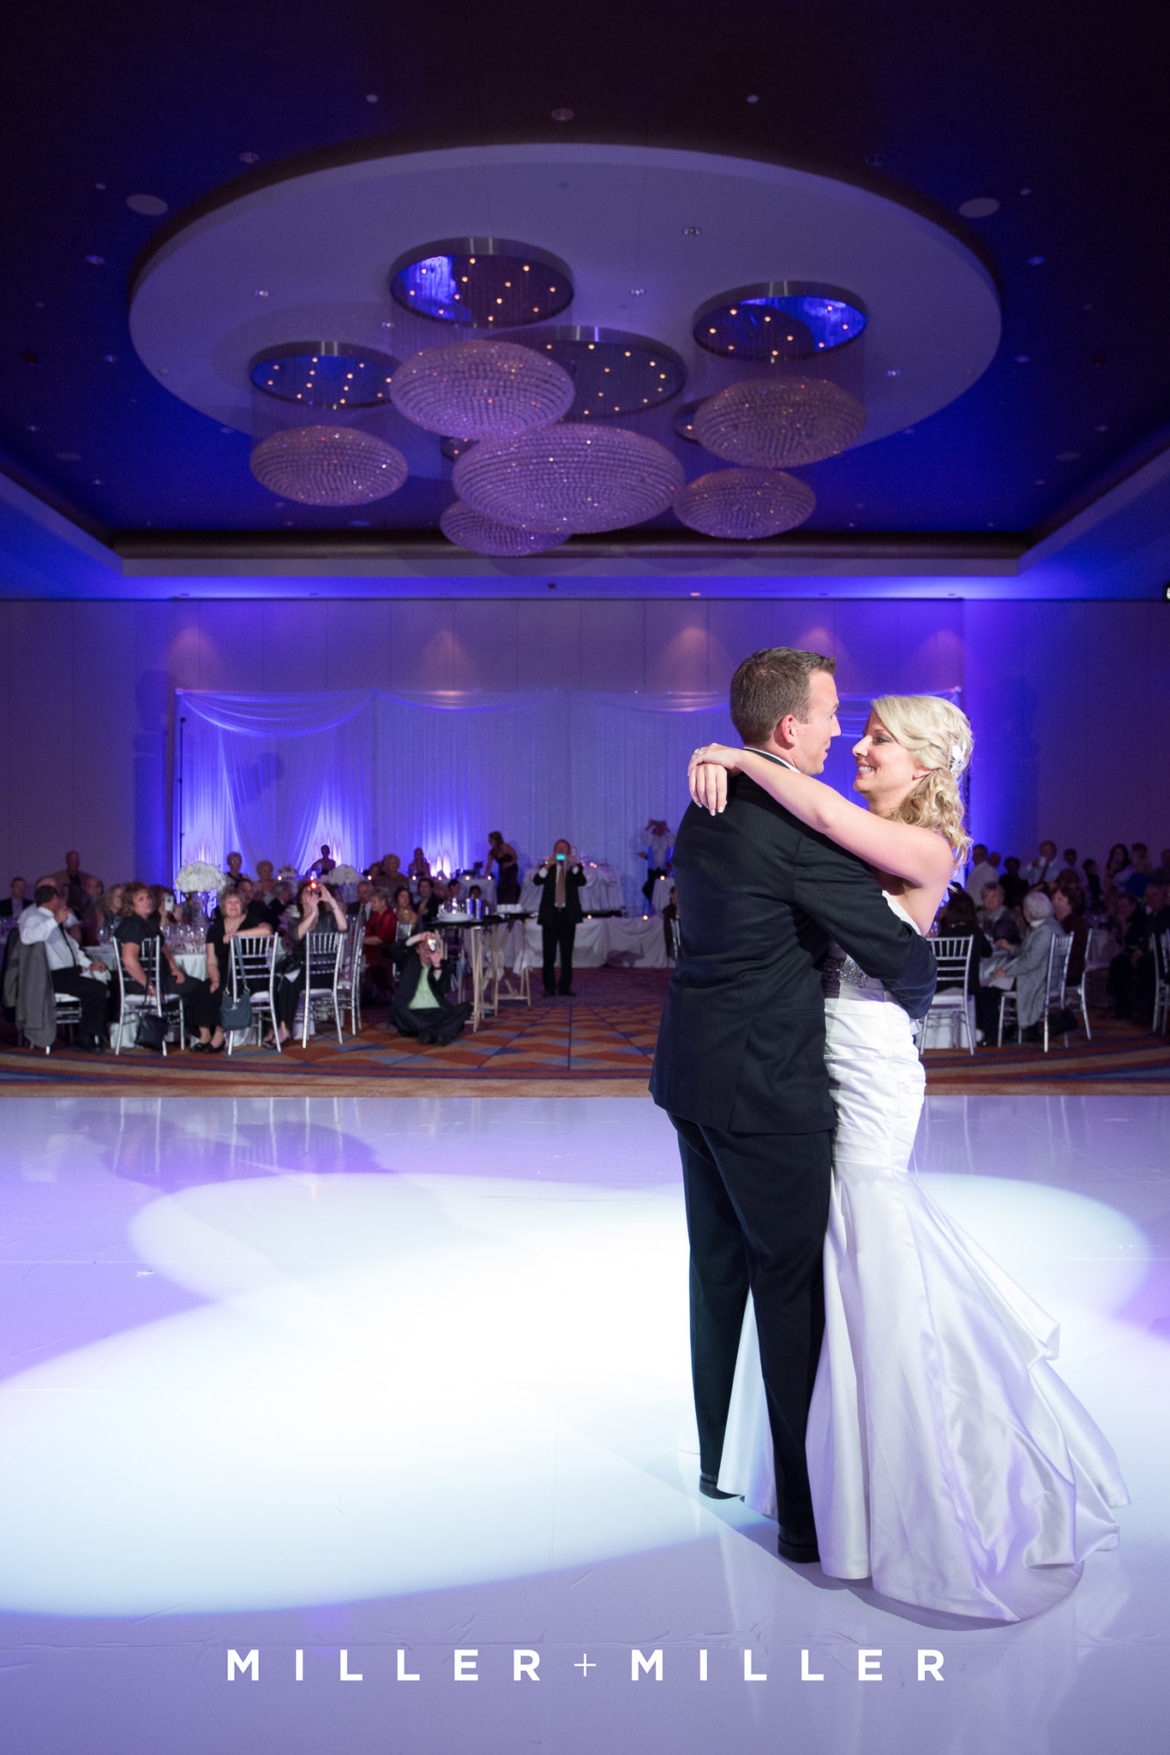 Elegant_Event_Lighting_Chicago_Renaissance_Schaumburg_Wedding_Uplighting_Purple_White_Backdrop_Draping_White_Vinyl_Dance_Floor_First_Dance